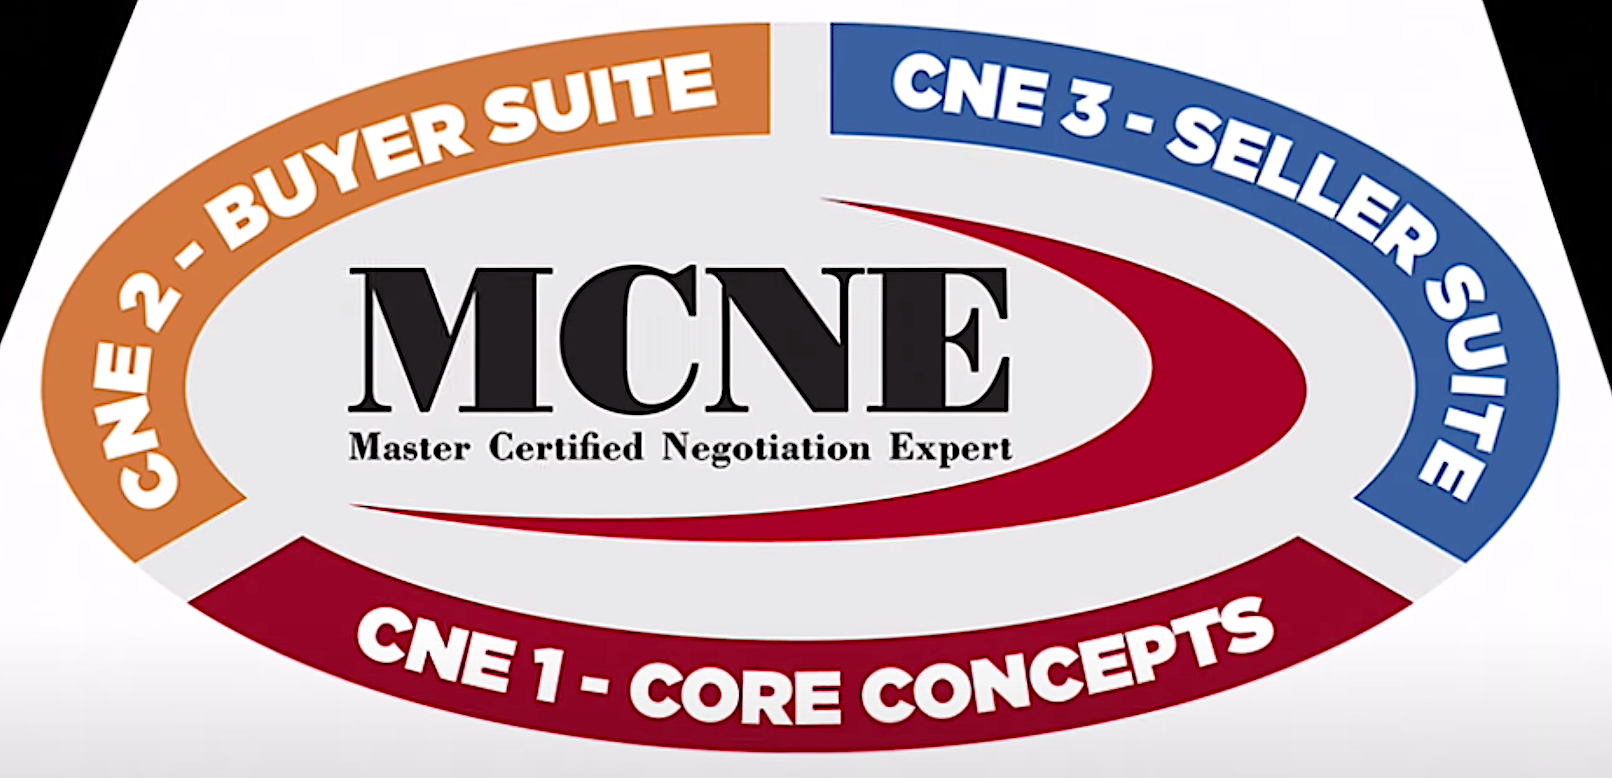 MCNE - Sheri Sperry - Master Certified Negotiation Expert